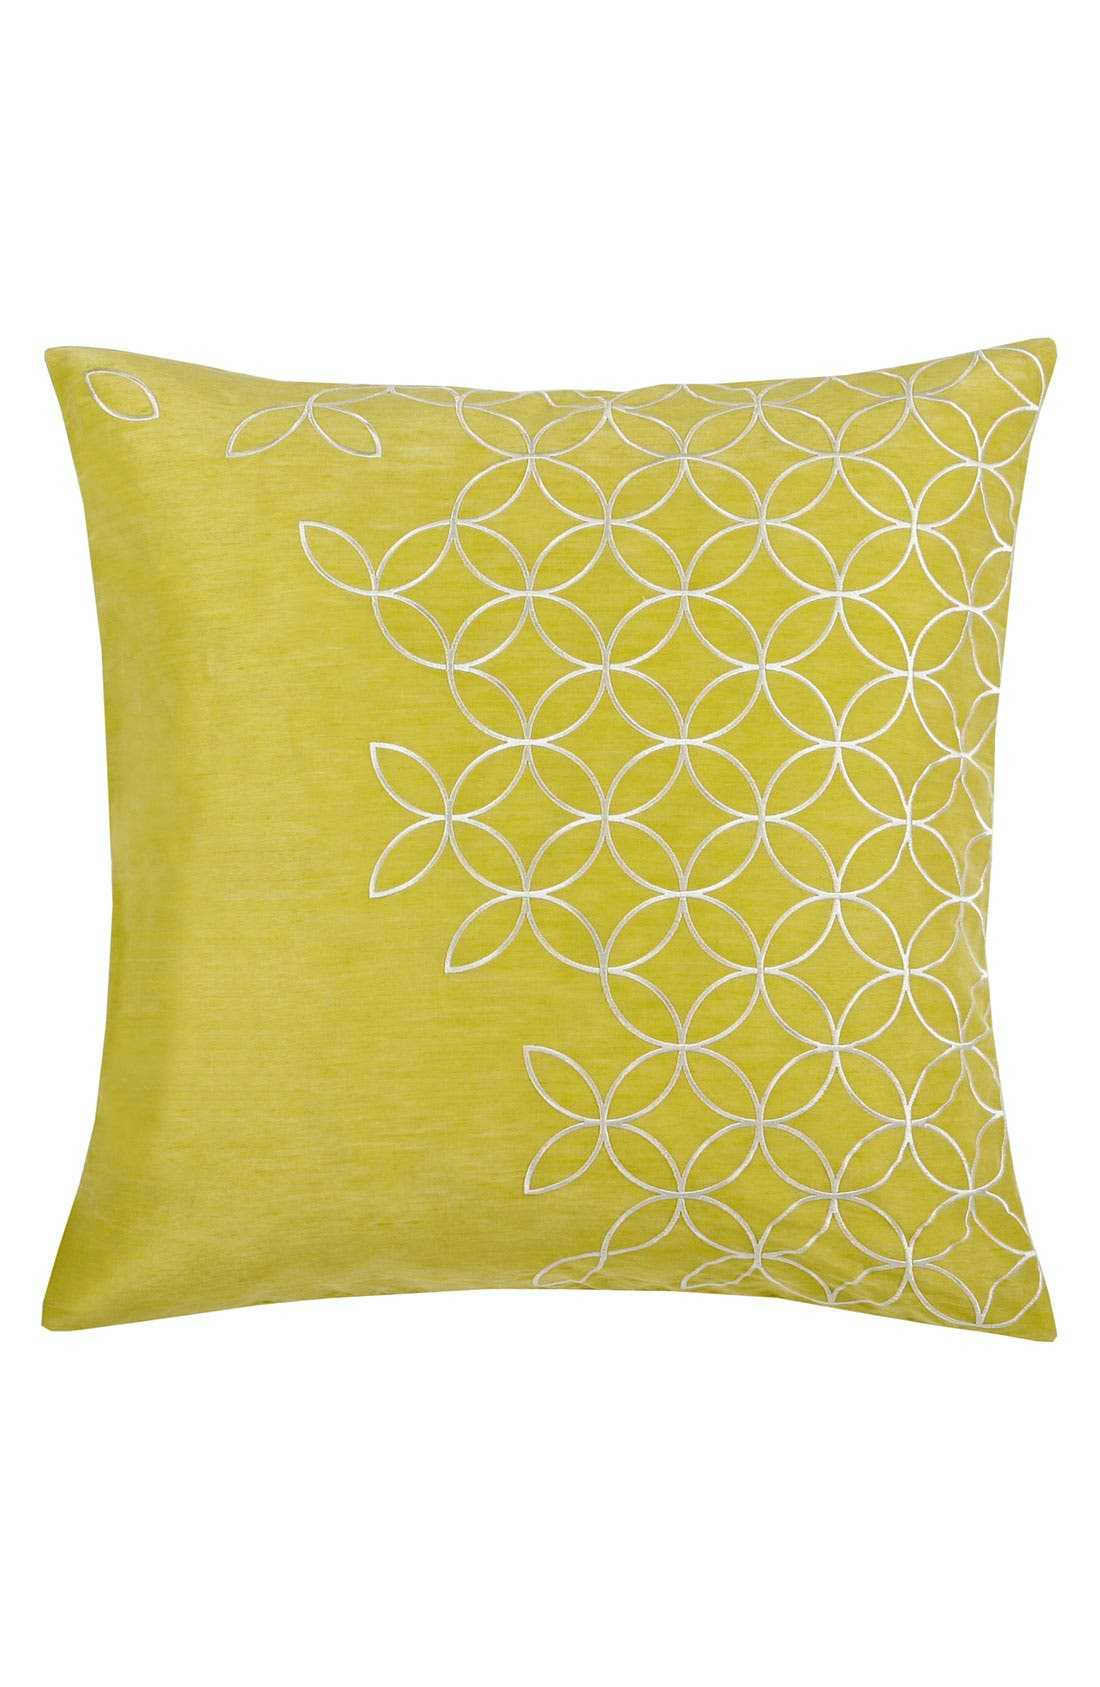 Alternate Image 1 Selected - Blissliving Home 'Latham' Pillow